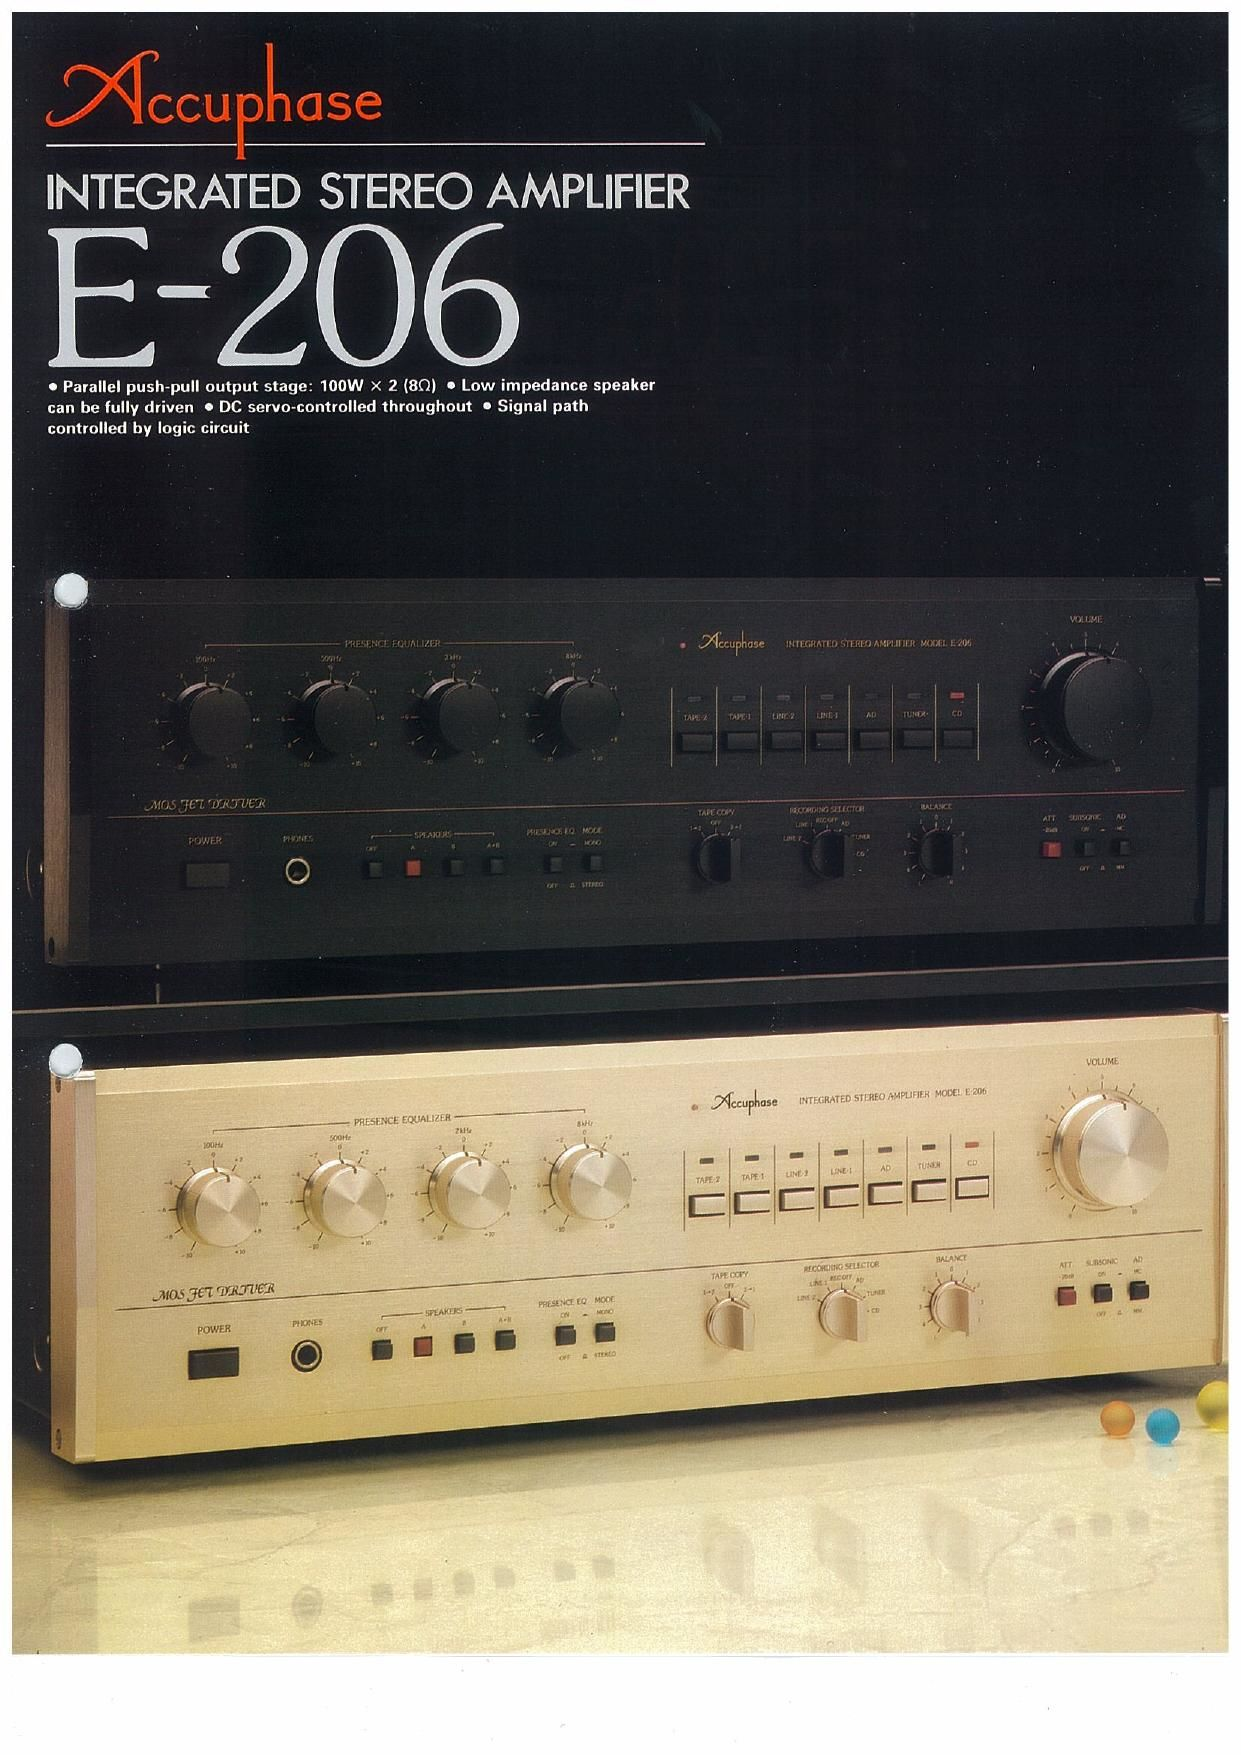 Accuphase E 206 Brochure